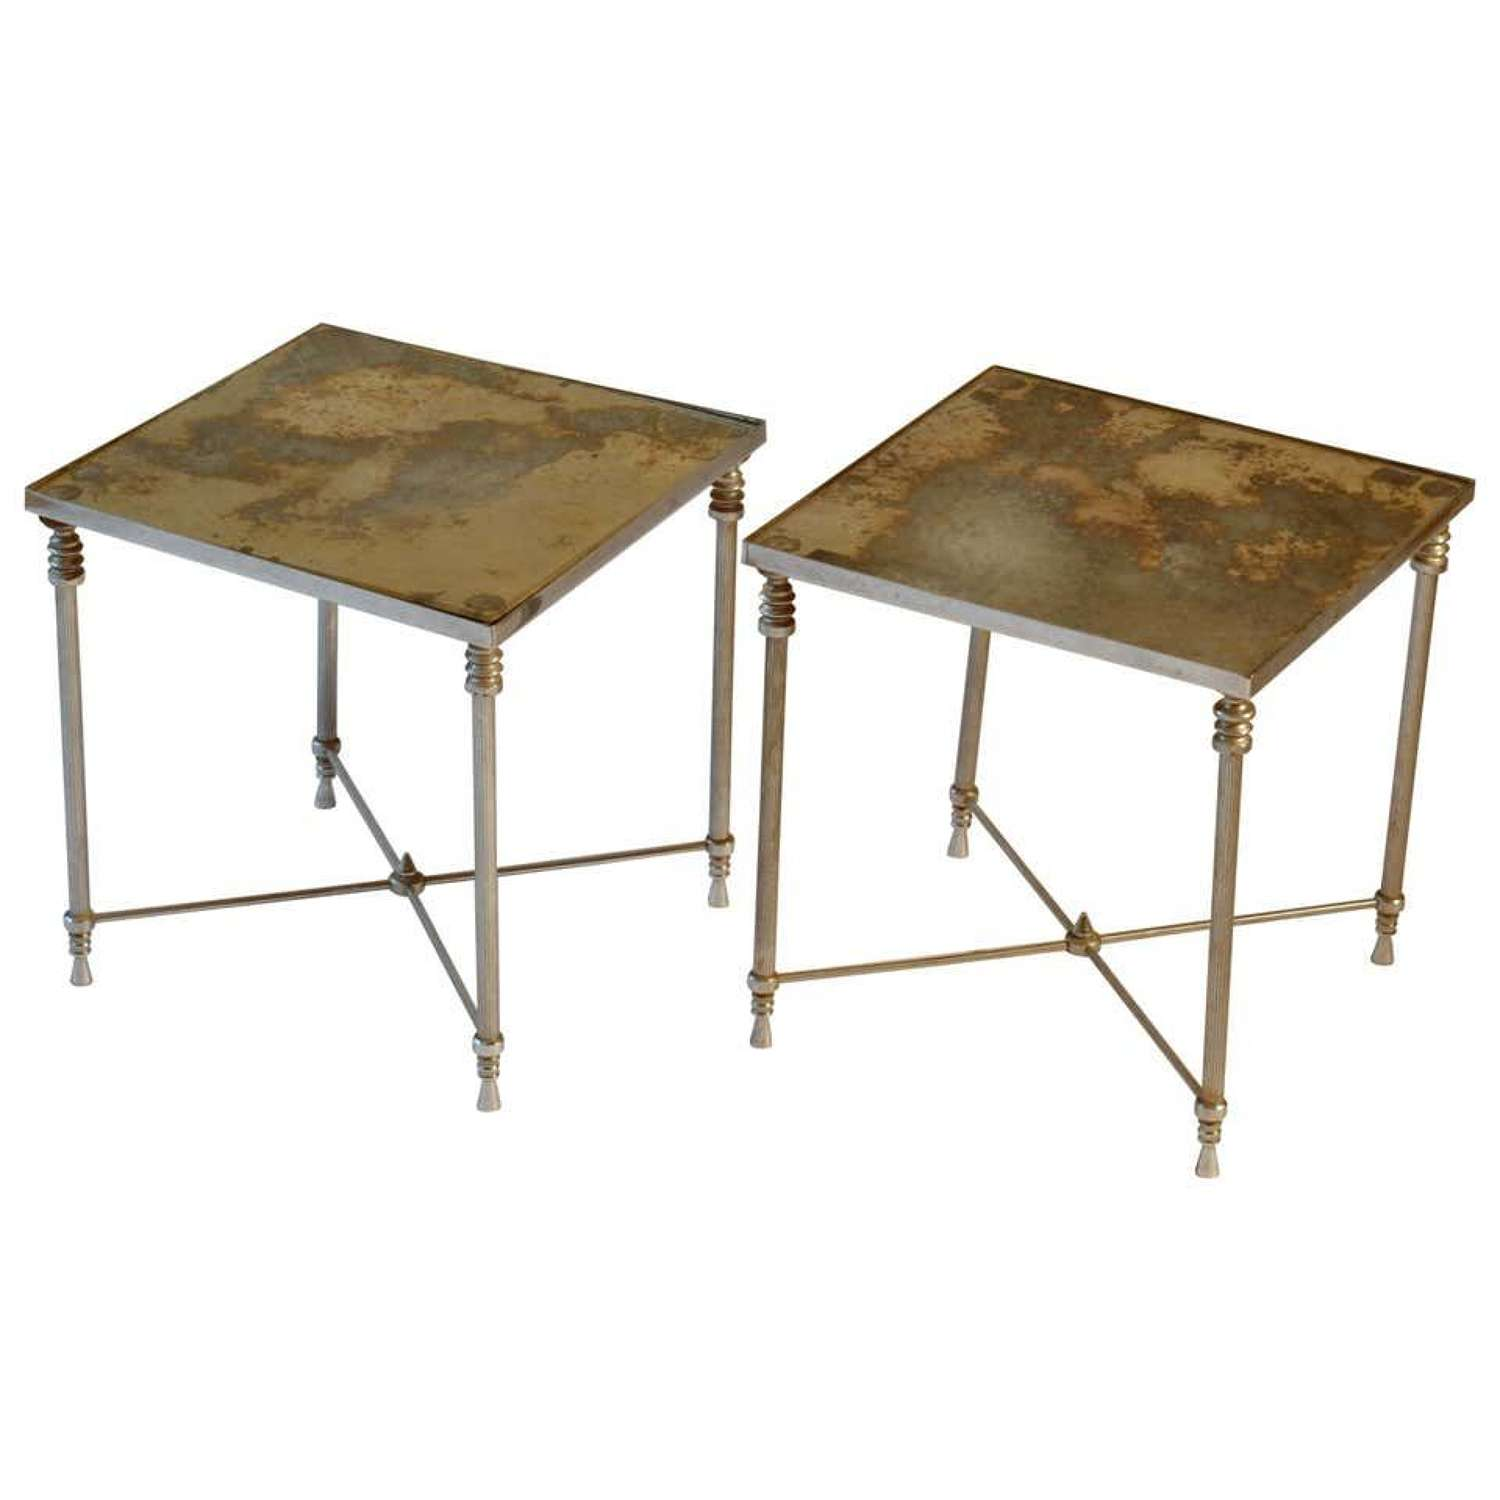 Pair of Regency Square Side Tables with Distressed Mirror